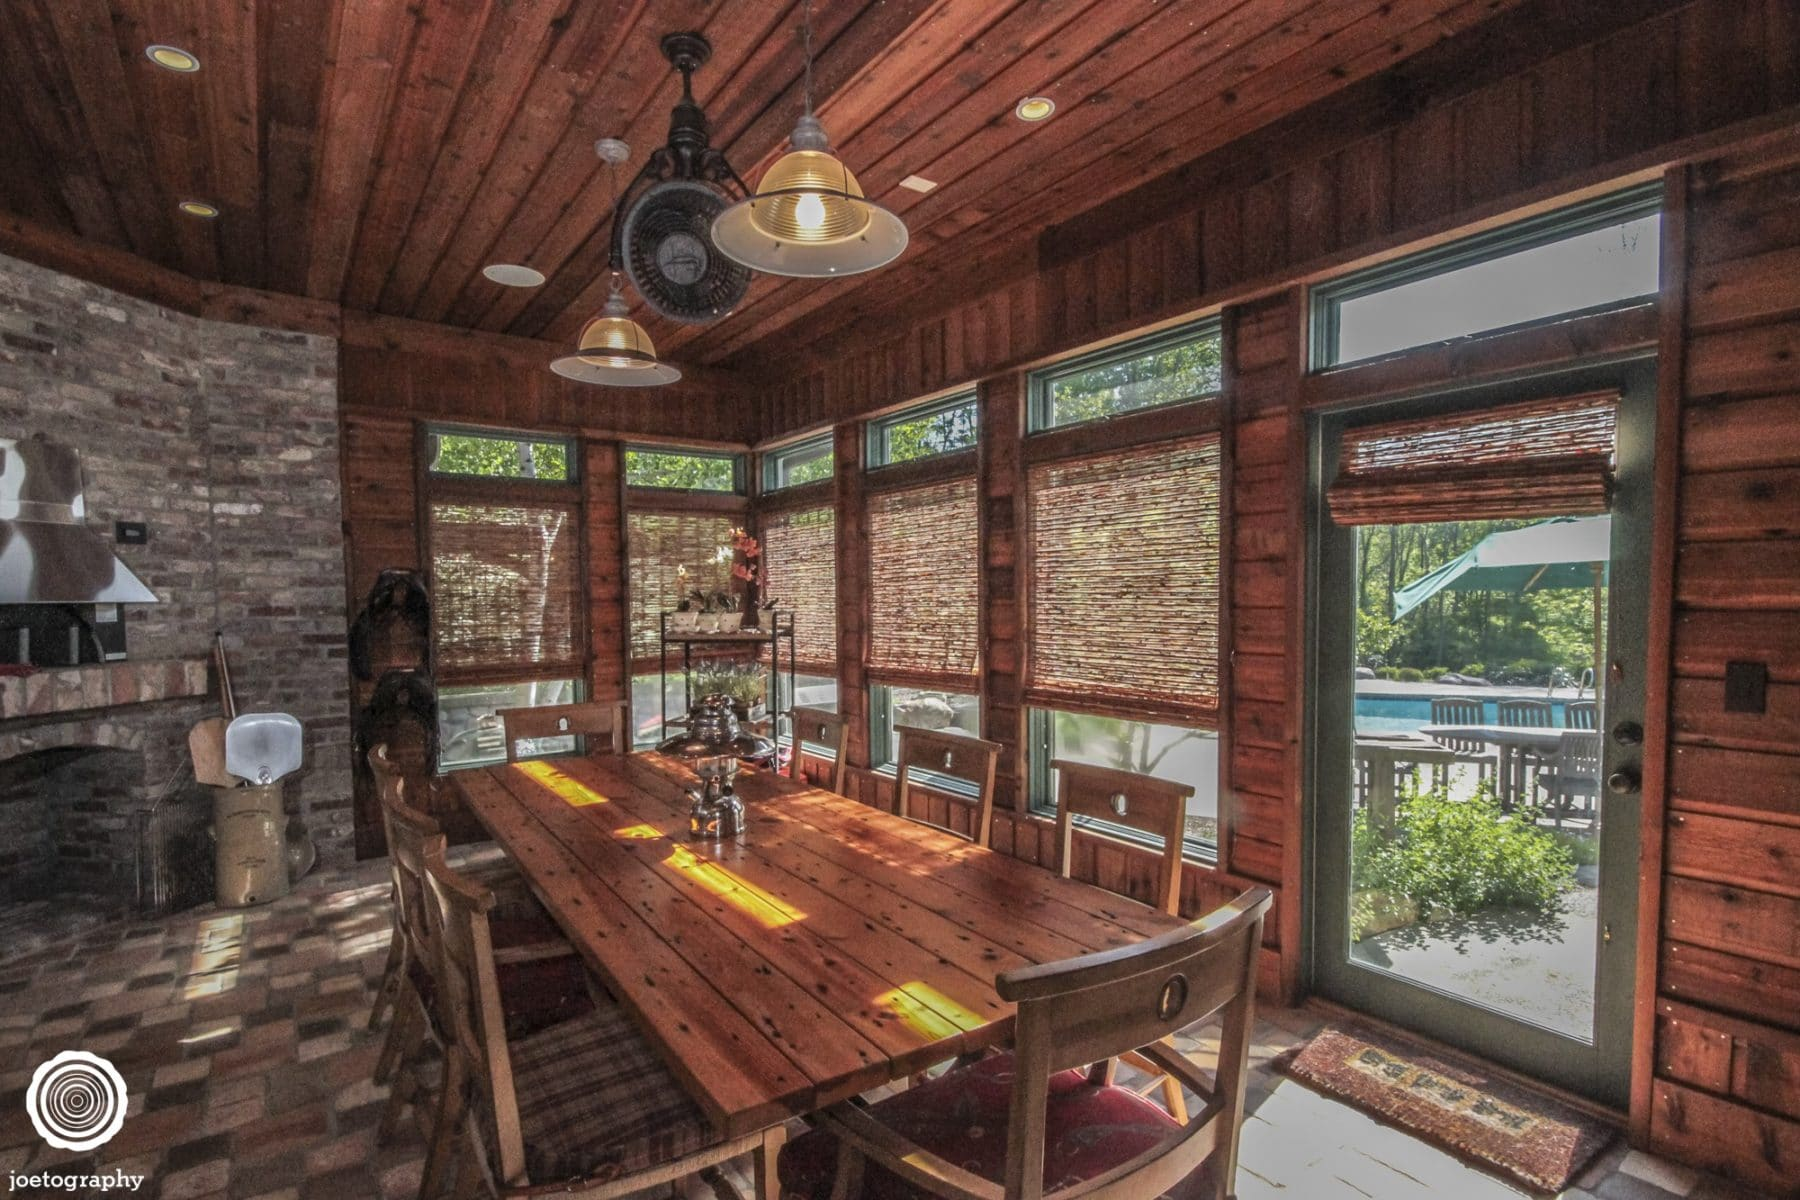 architectural-real-estate-photography-fishers-indiana-133